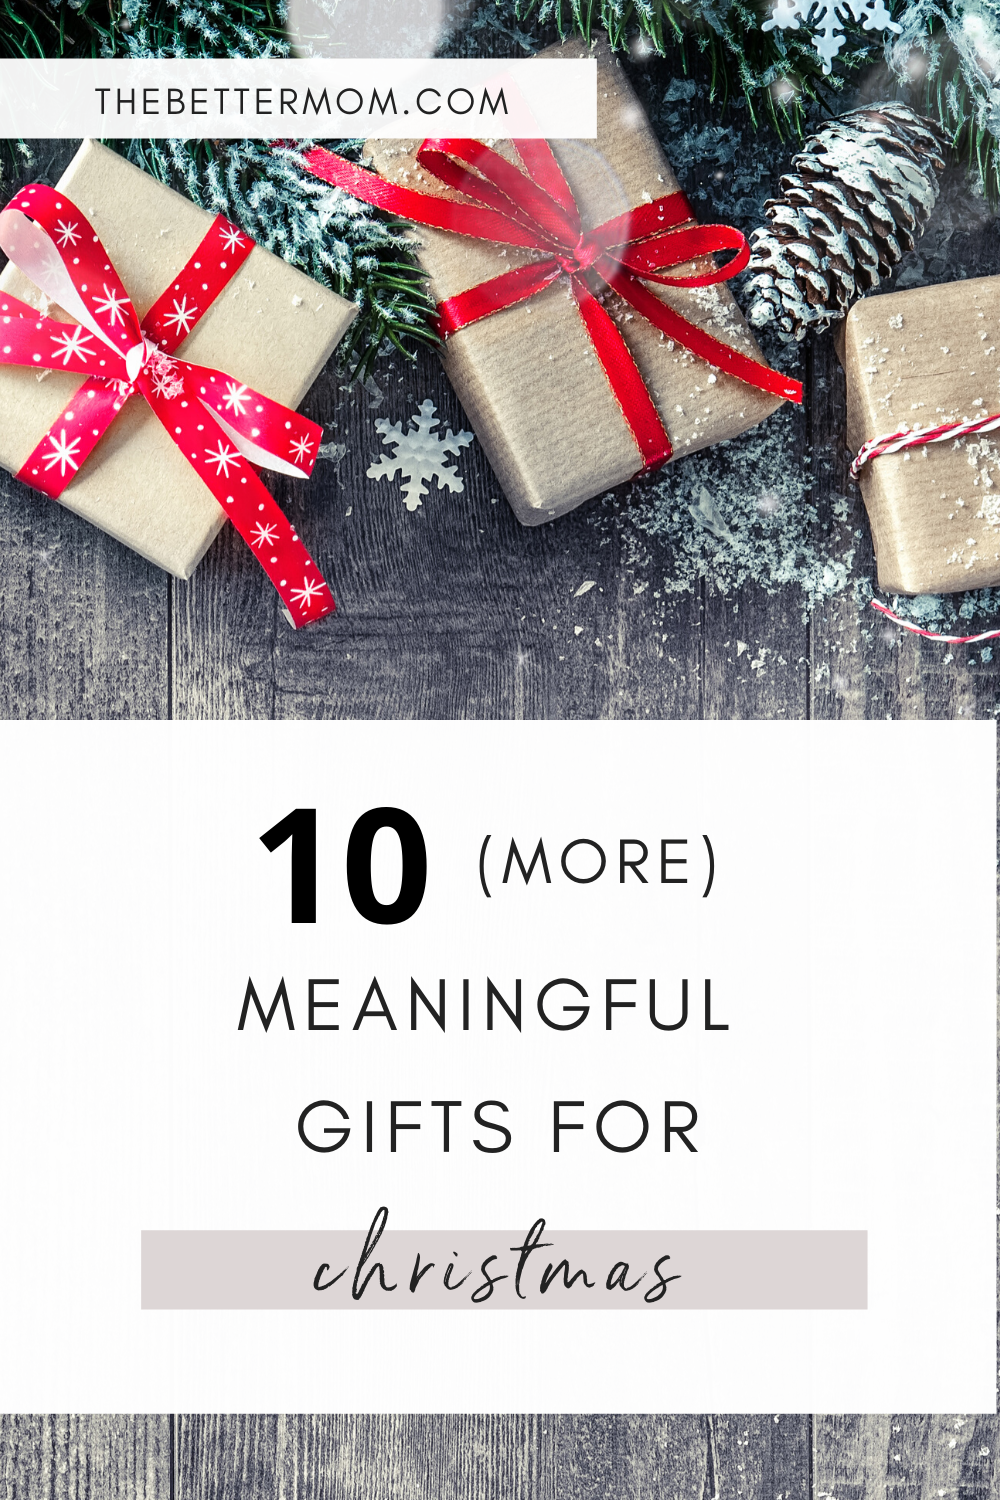 10 More Meaningful Gifts for Christmas